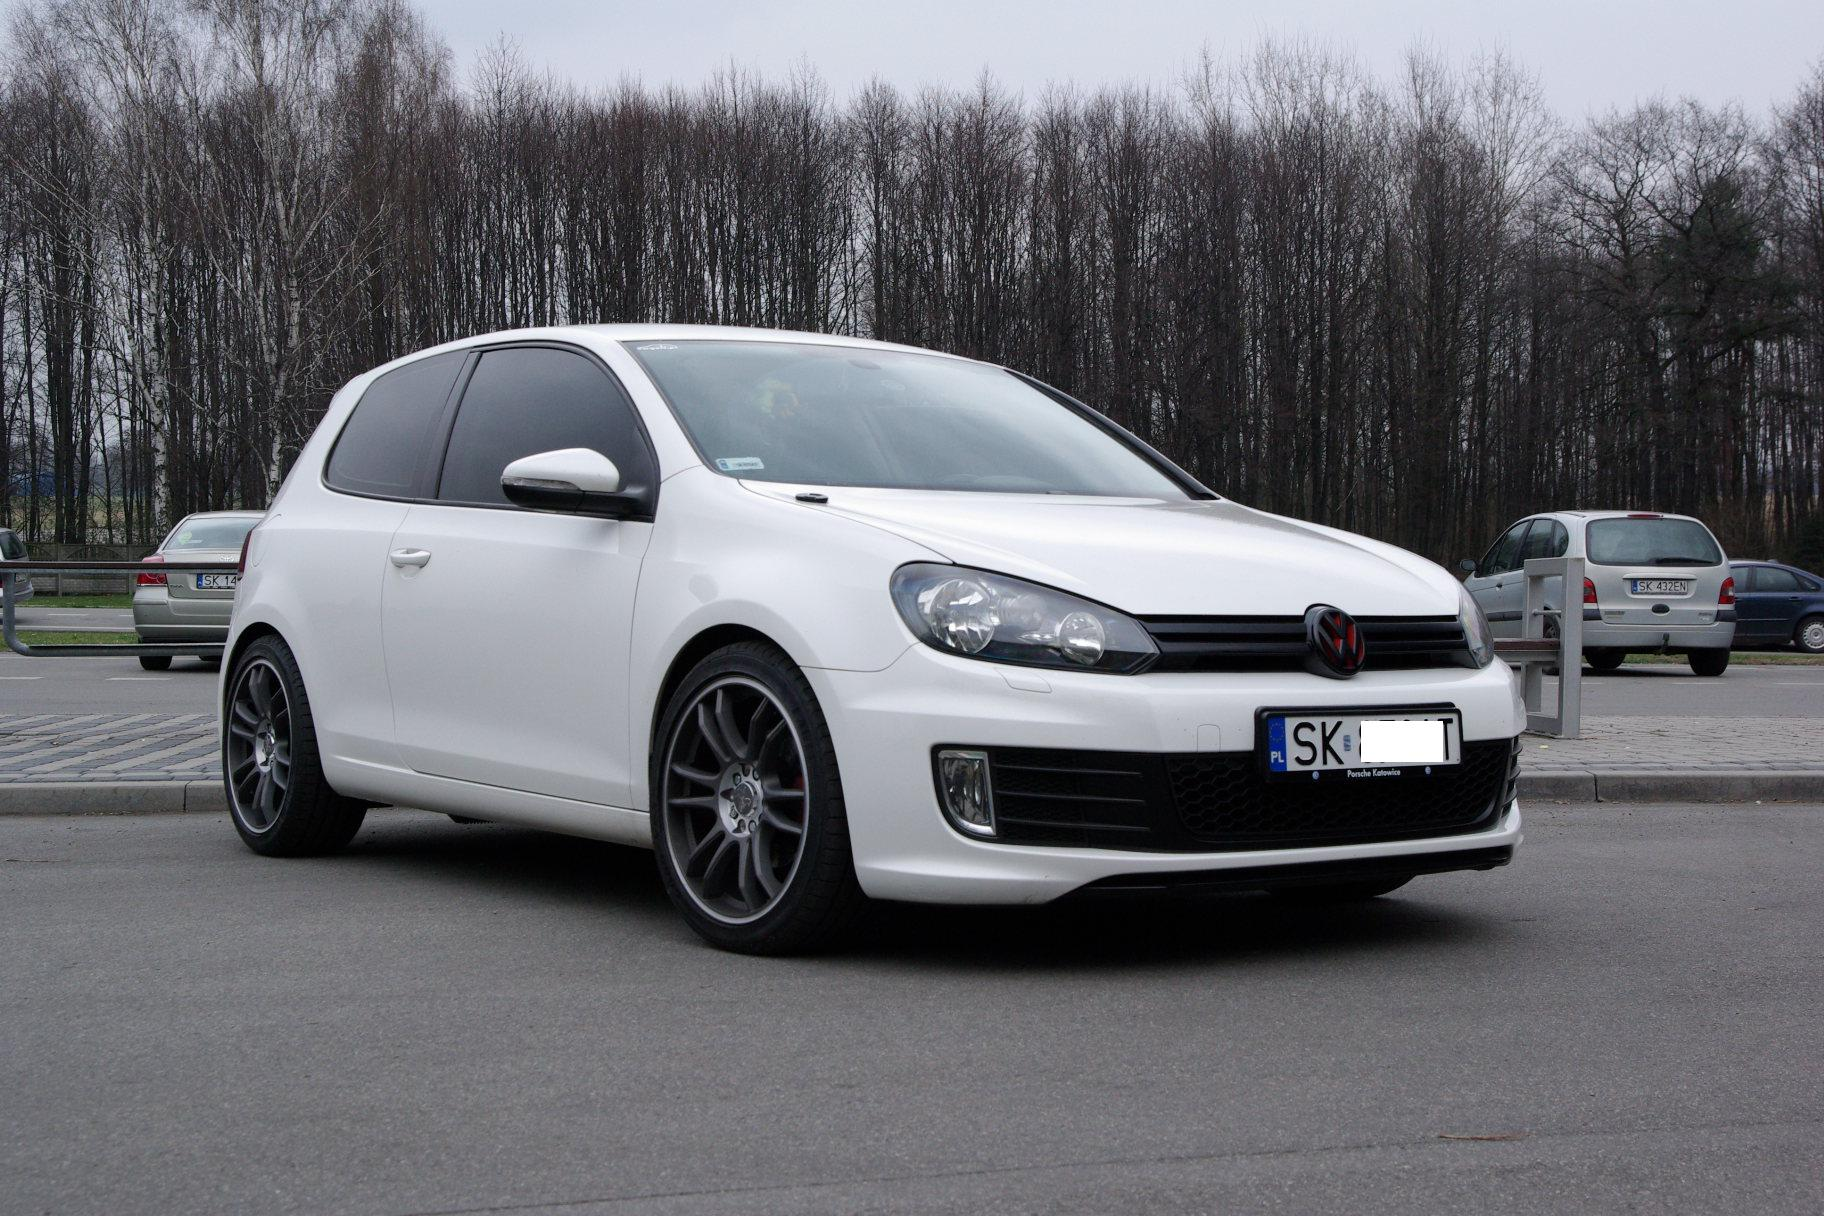 golf 6 2 0tdi candywhite by marmi forum. Black Bedroom Furniture Sets. Home Design Ideas